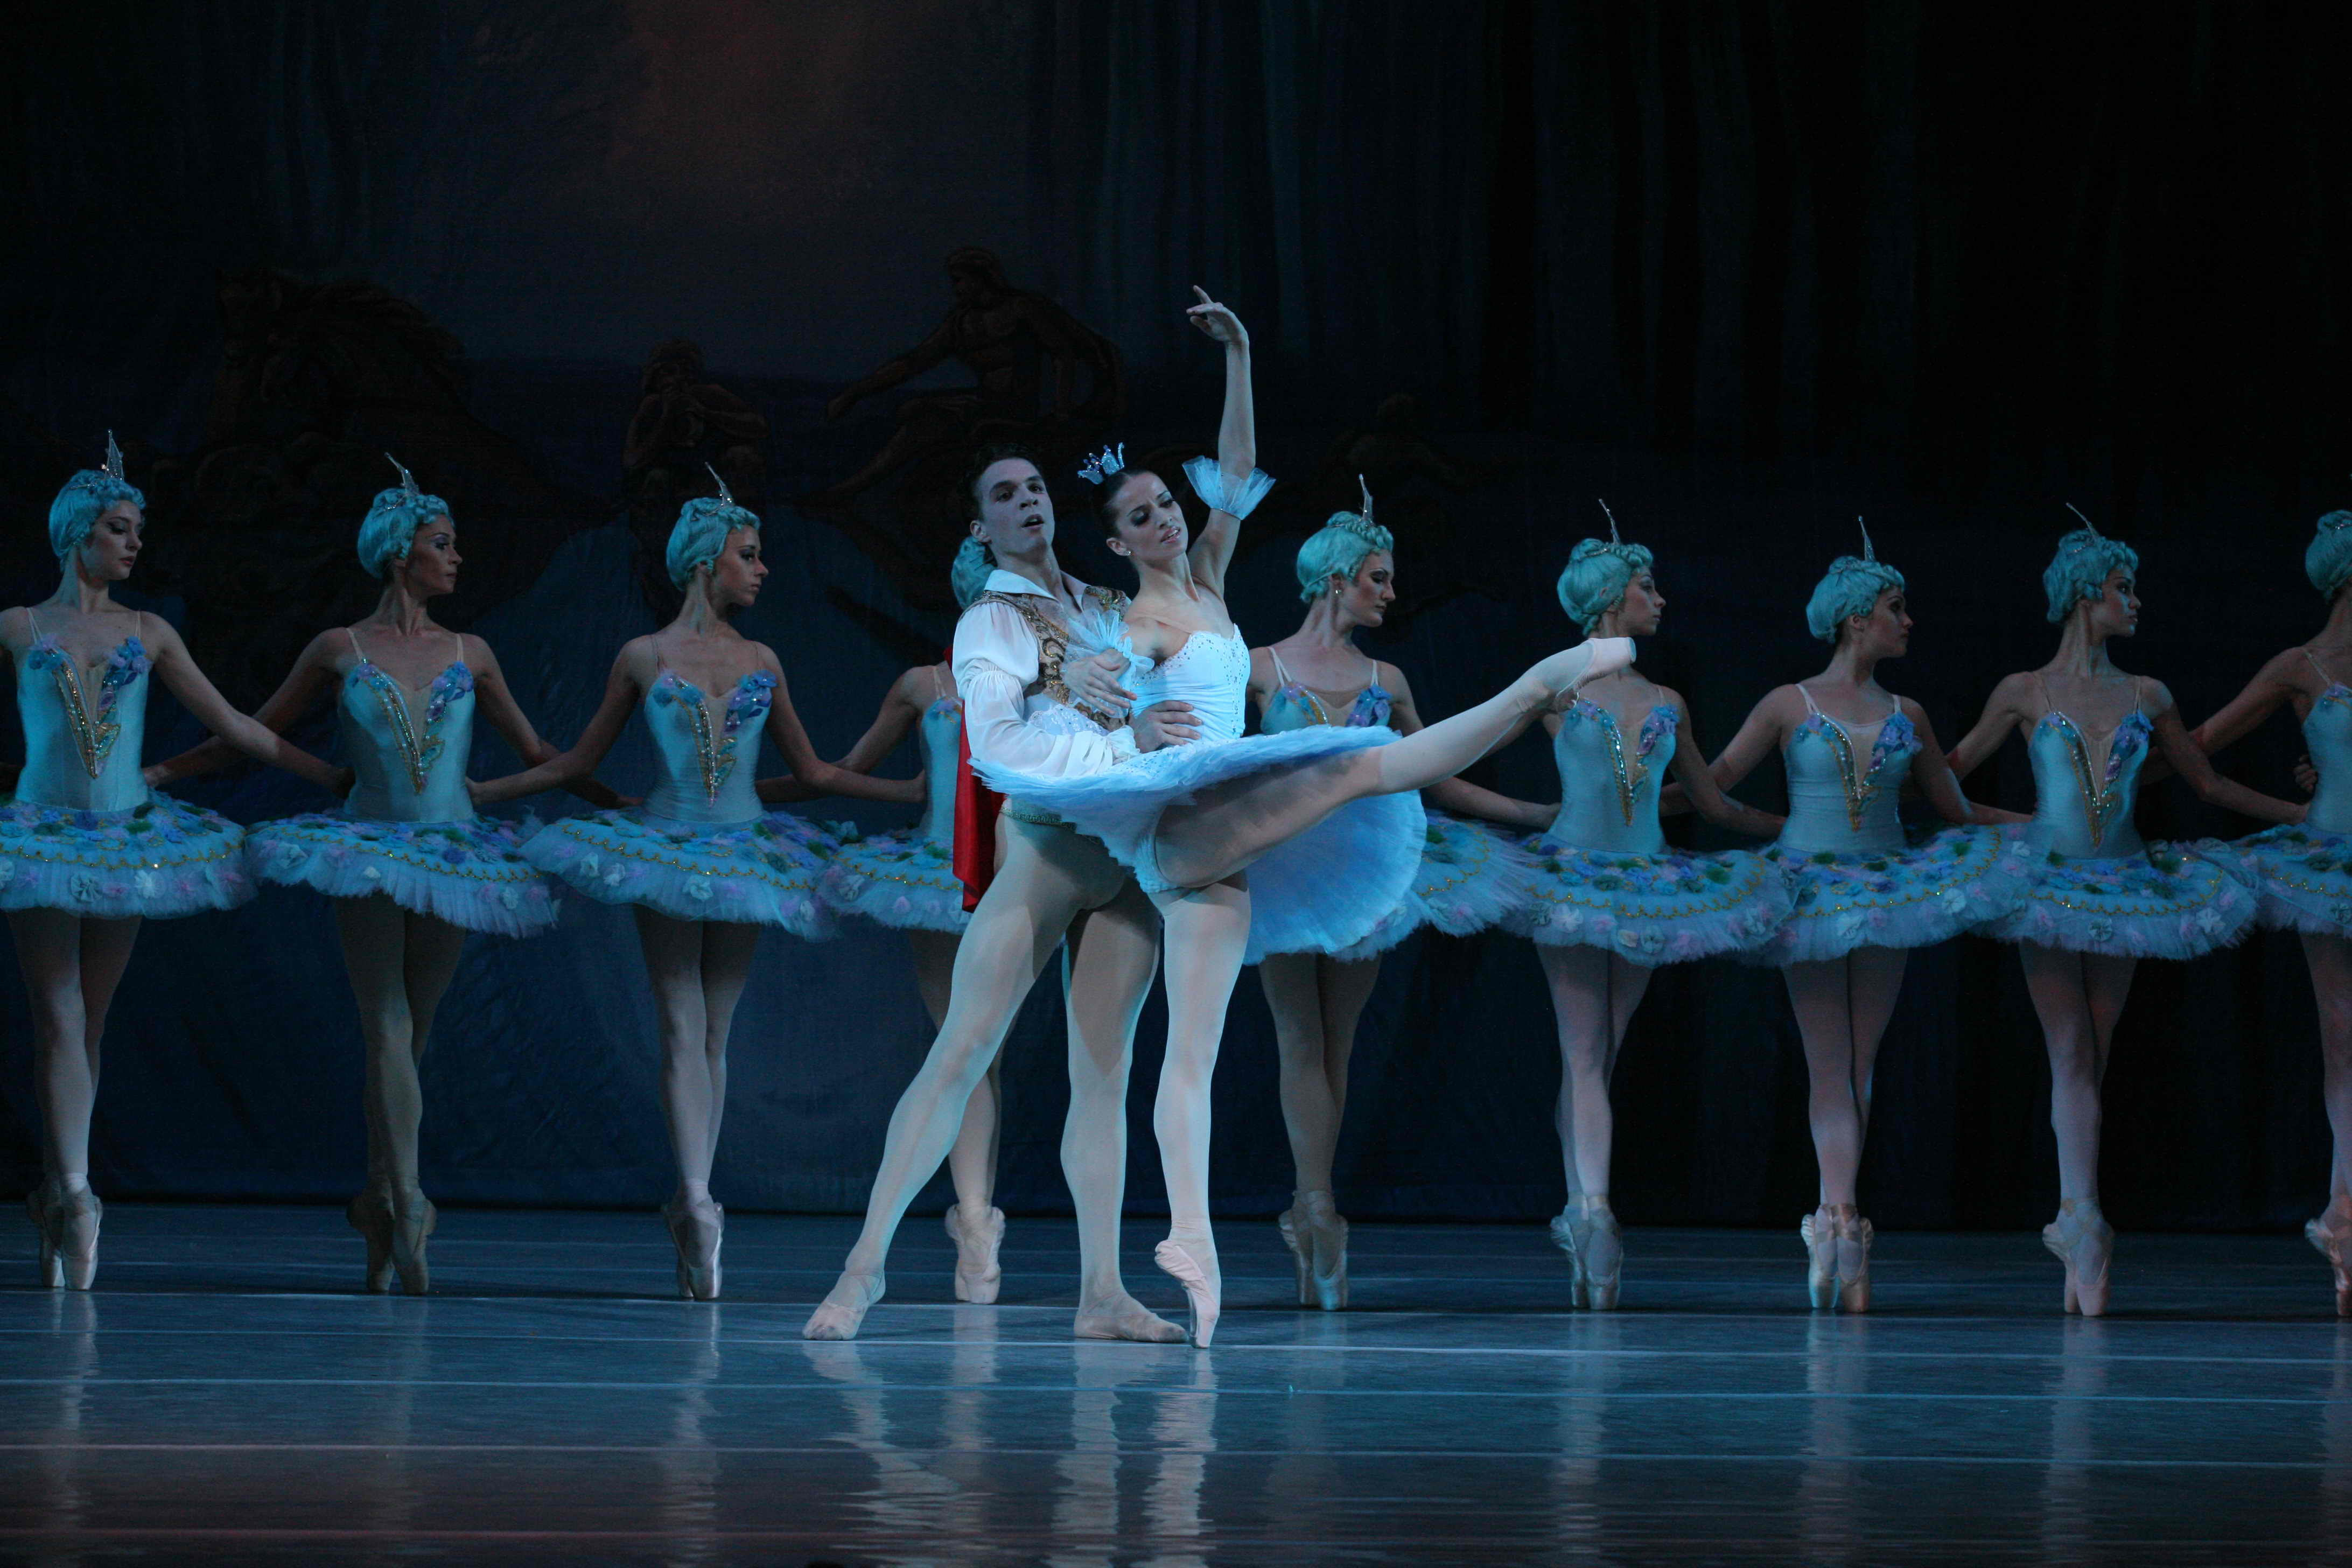 http://ballet.unblog.fr/files/2010/01/labelle7.jpg